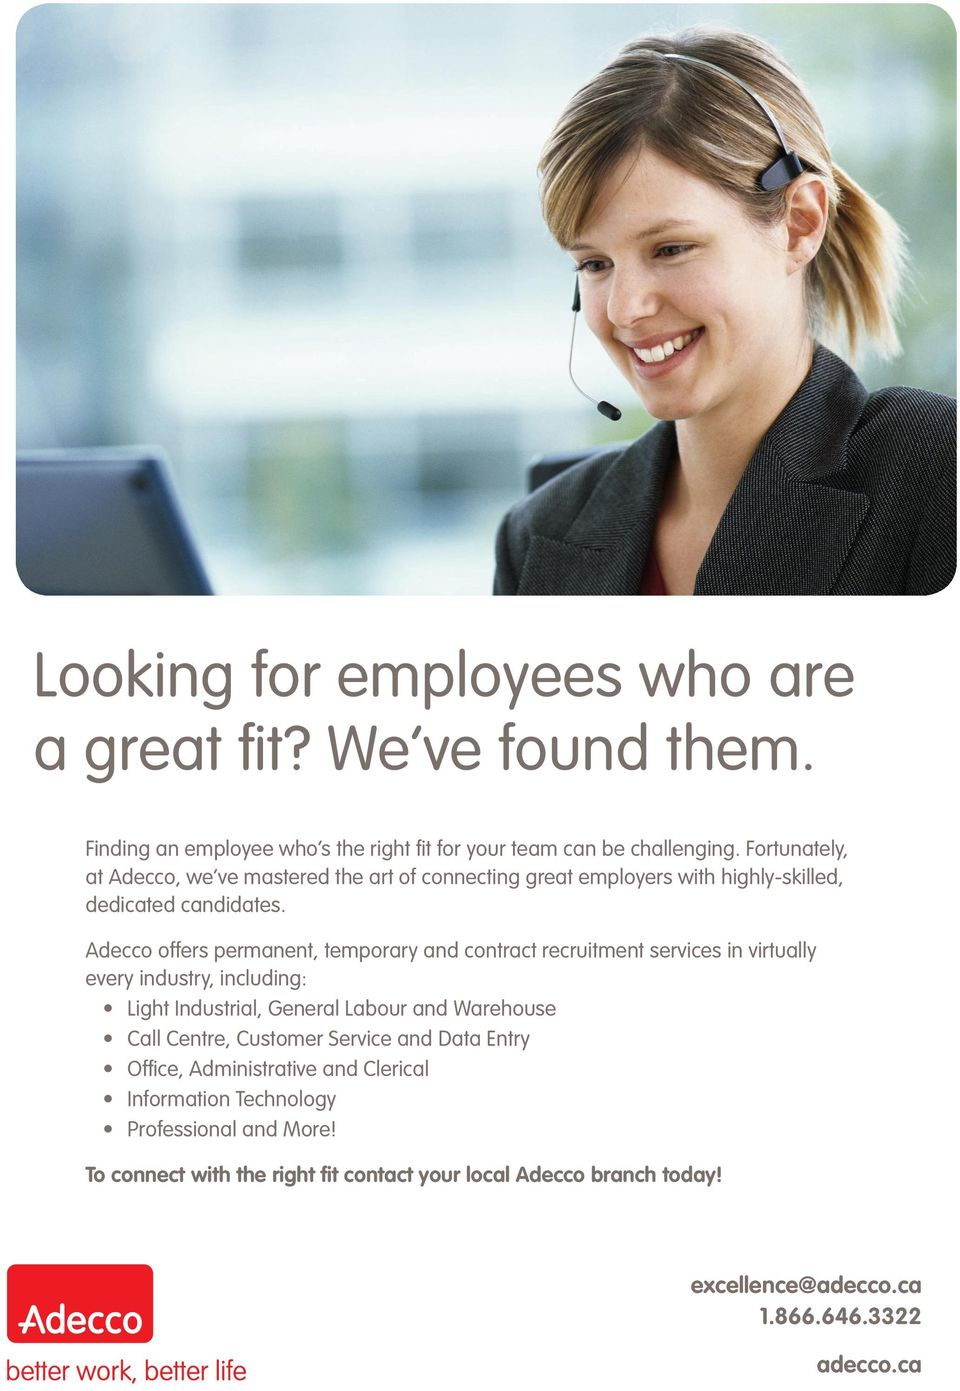 Adecco offers permanent, temporary and contract recruitment services in virtually every industry, including: Light Industrial, General Labour and Warehouse Call